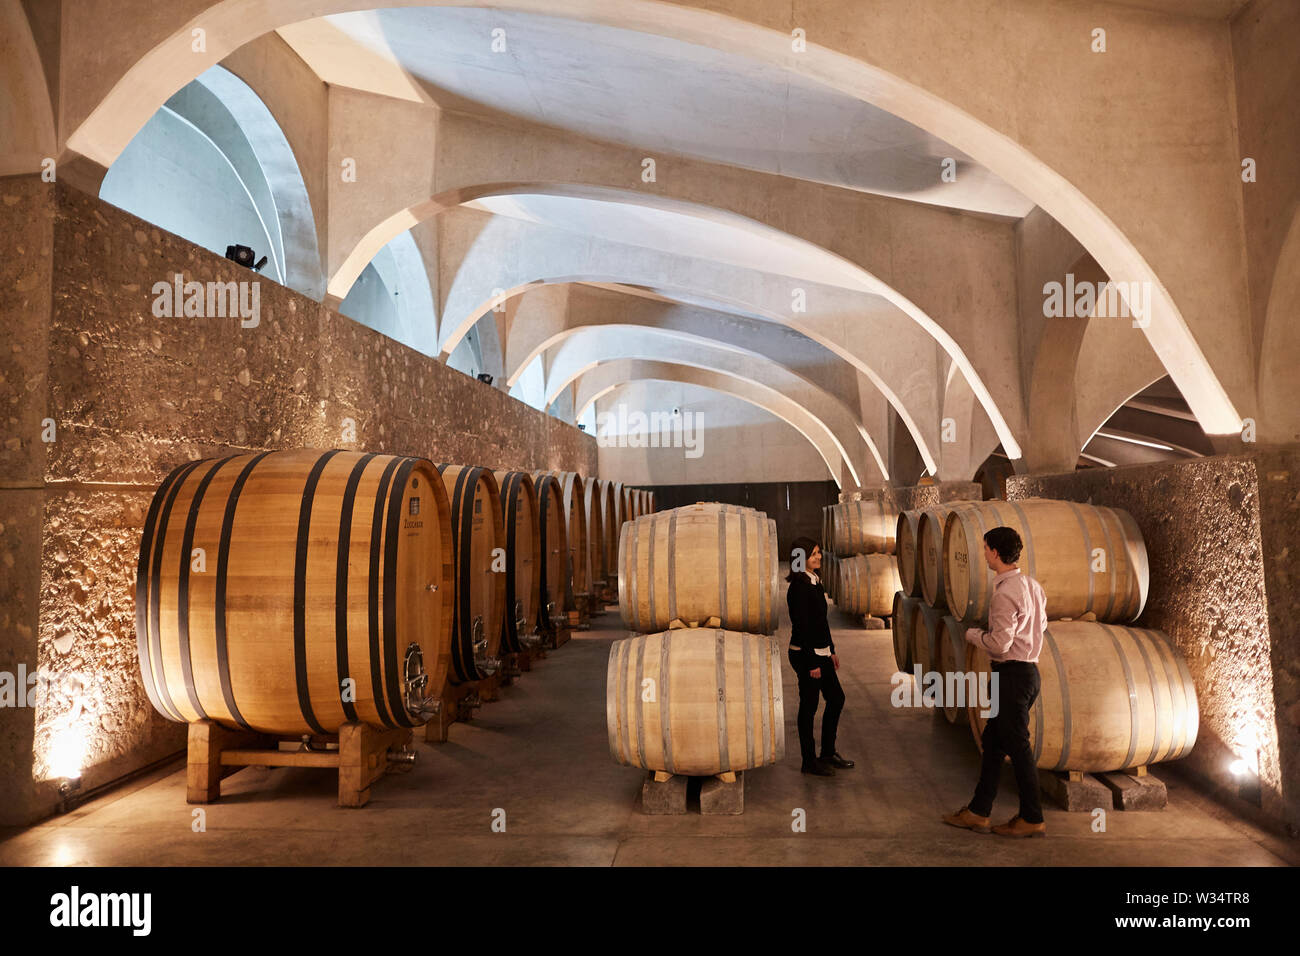 11 July 2019, Argentina, San Carlos: Two visitors stand in the wine cellar of Piedra Infinita. The Argentinian winery Piedra Infinita of the brand Zuccardi was awarded by the World's Best Vineyards Academy as the best winery and winery in the world. This award recognizes the best 50 wineries in the world, based on the experience offered to the visitor. Photo: Marcelo Aguilar/dpa - Stock Image